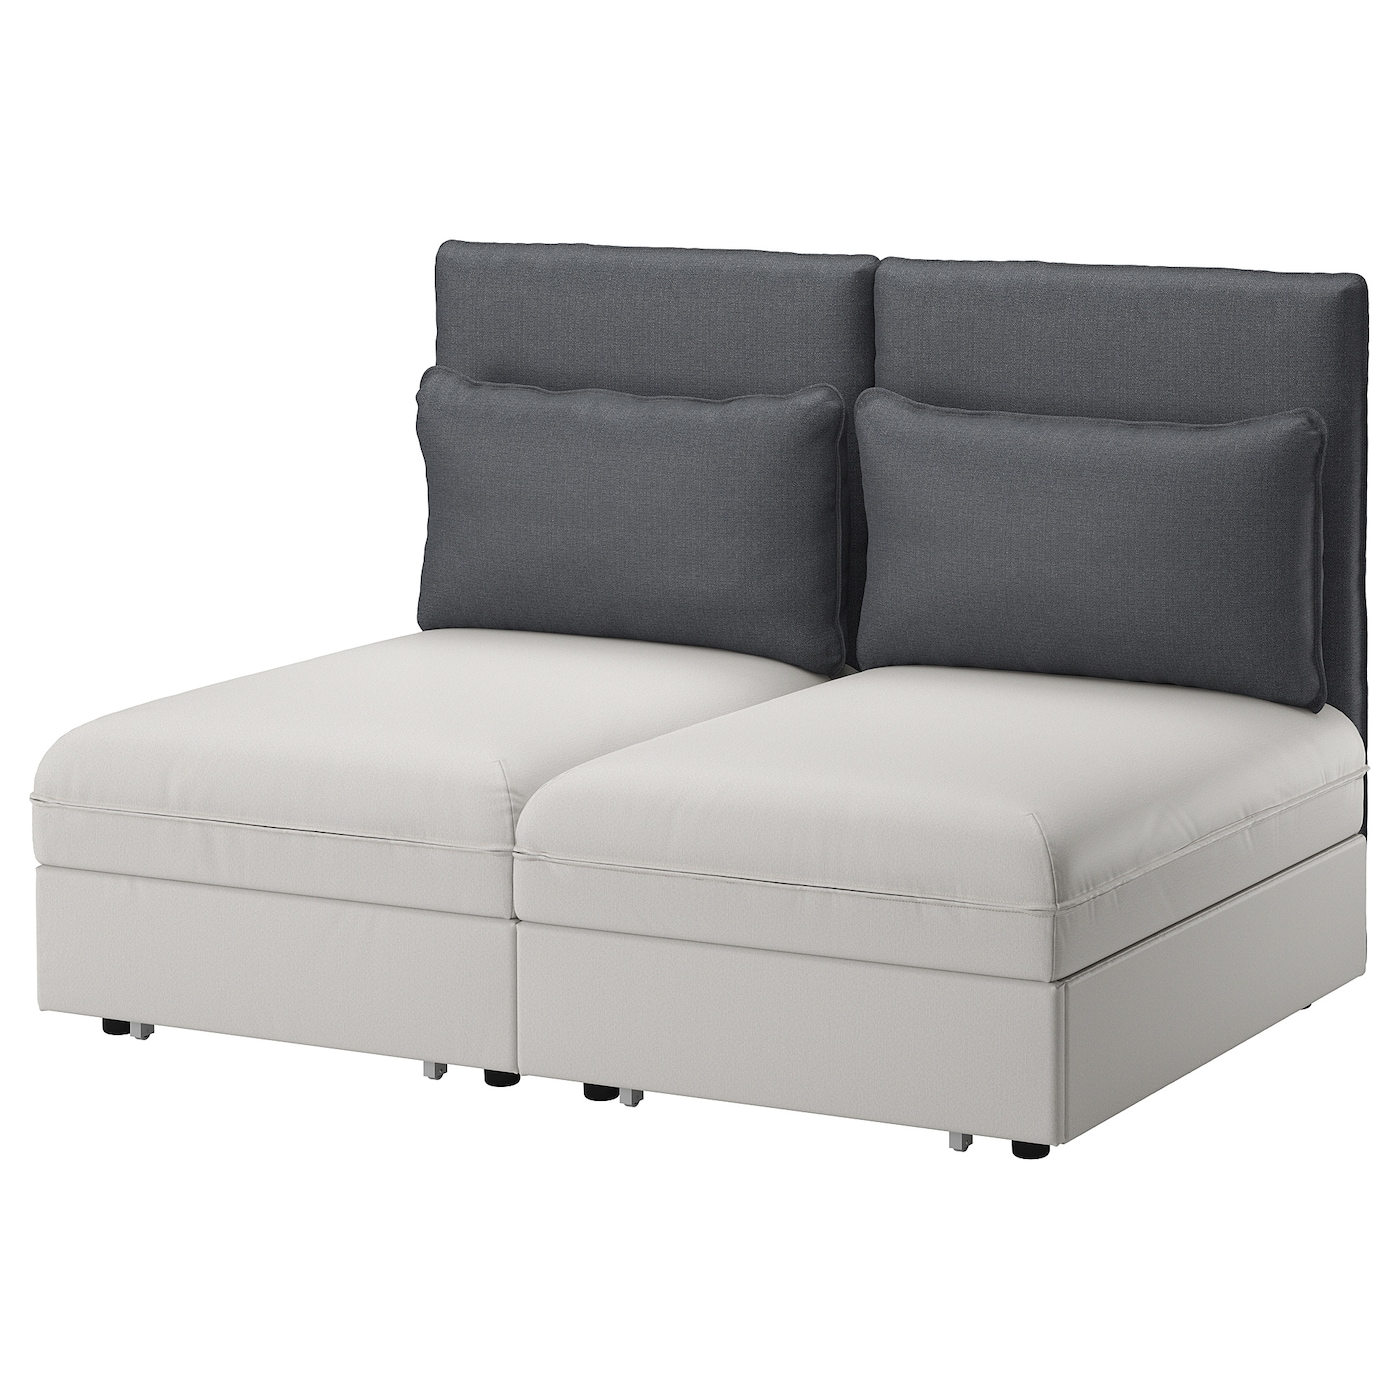 Sofa Bed vallentuna 2-seat sofa with bed ramna light grey/hillared dark